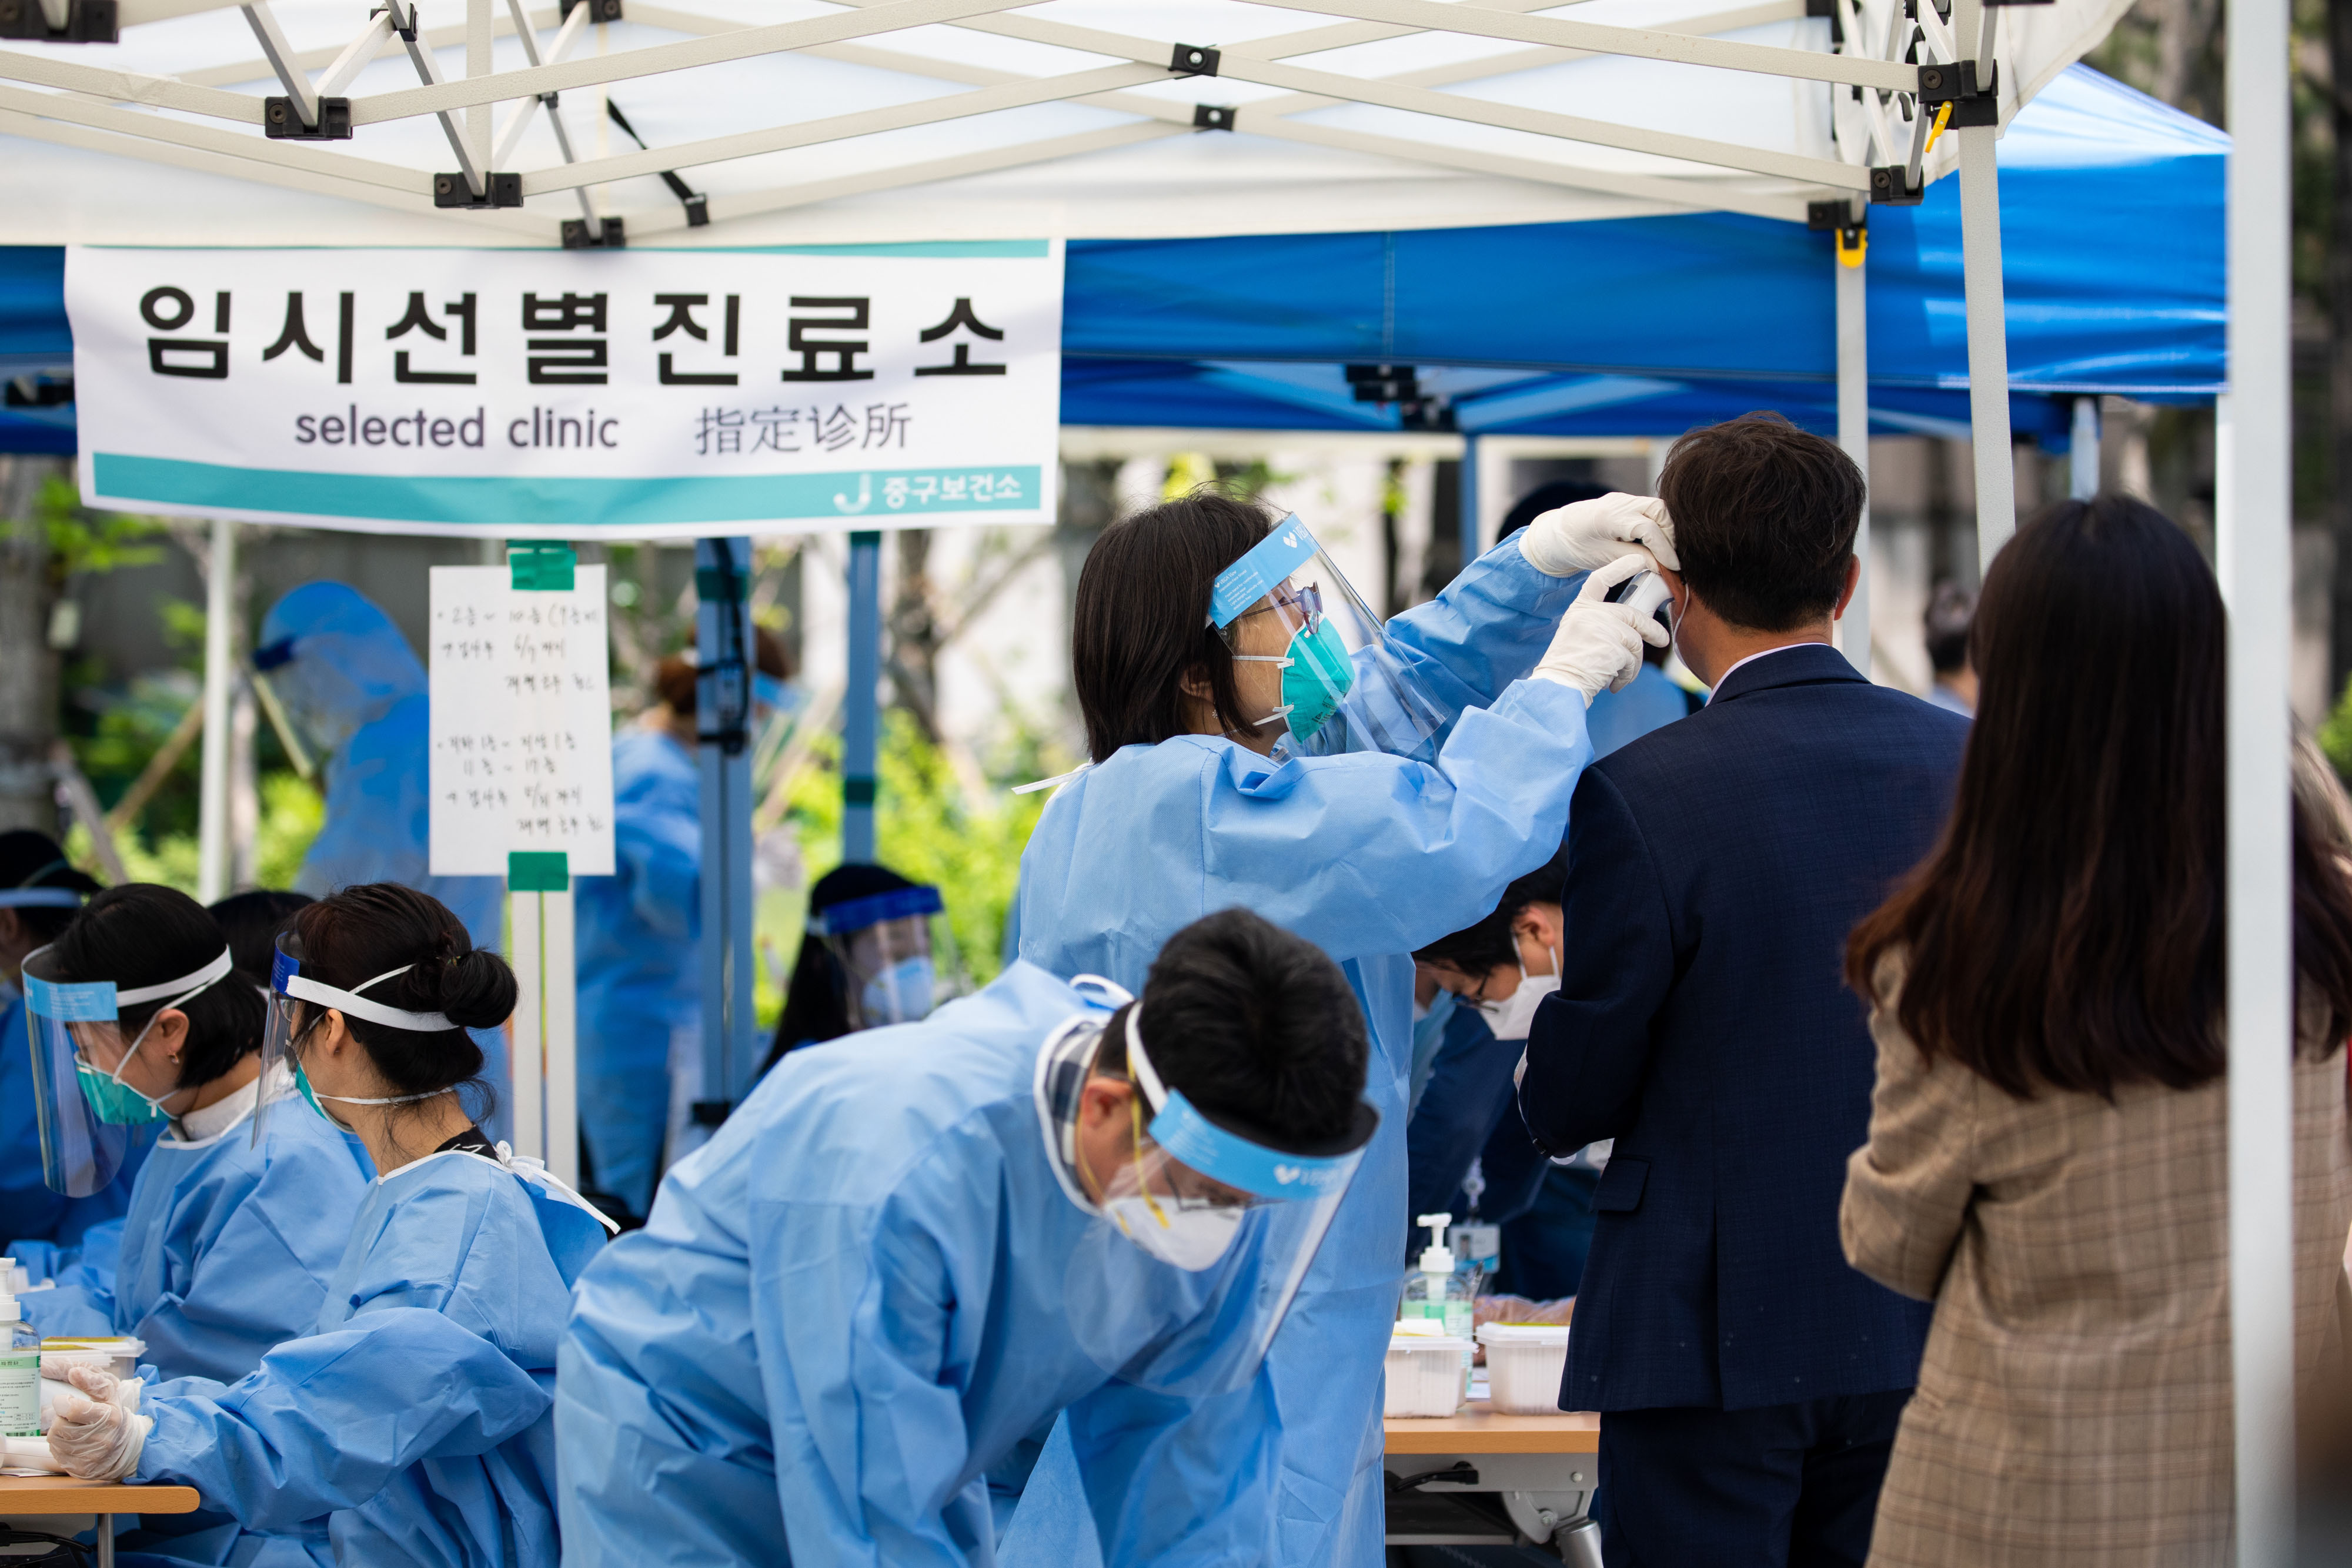 A medical worker checks the temperature of a man at a temporary coronavirus testing station in Seoul, South Korea, on May 29.